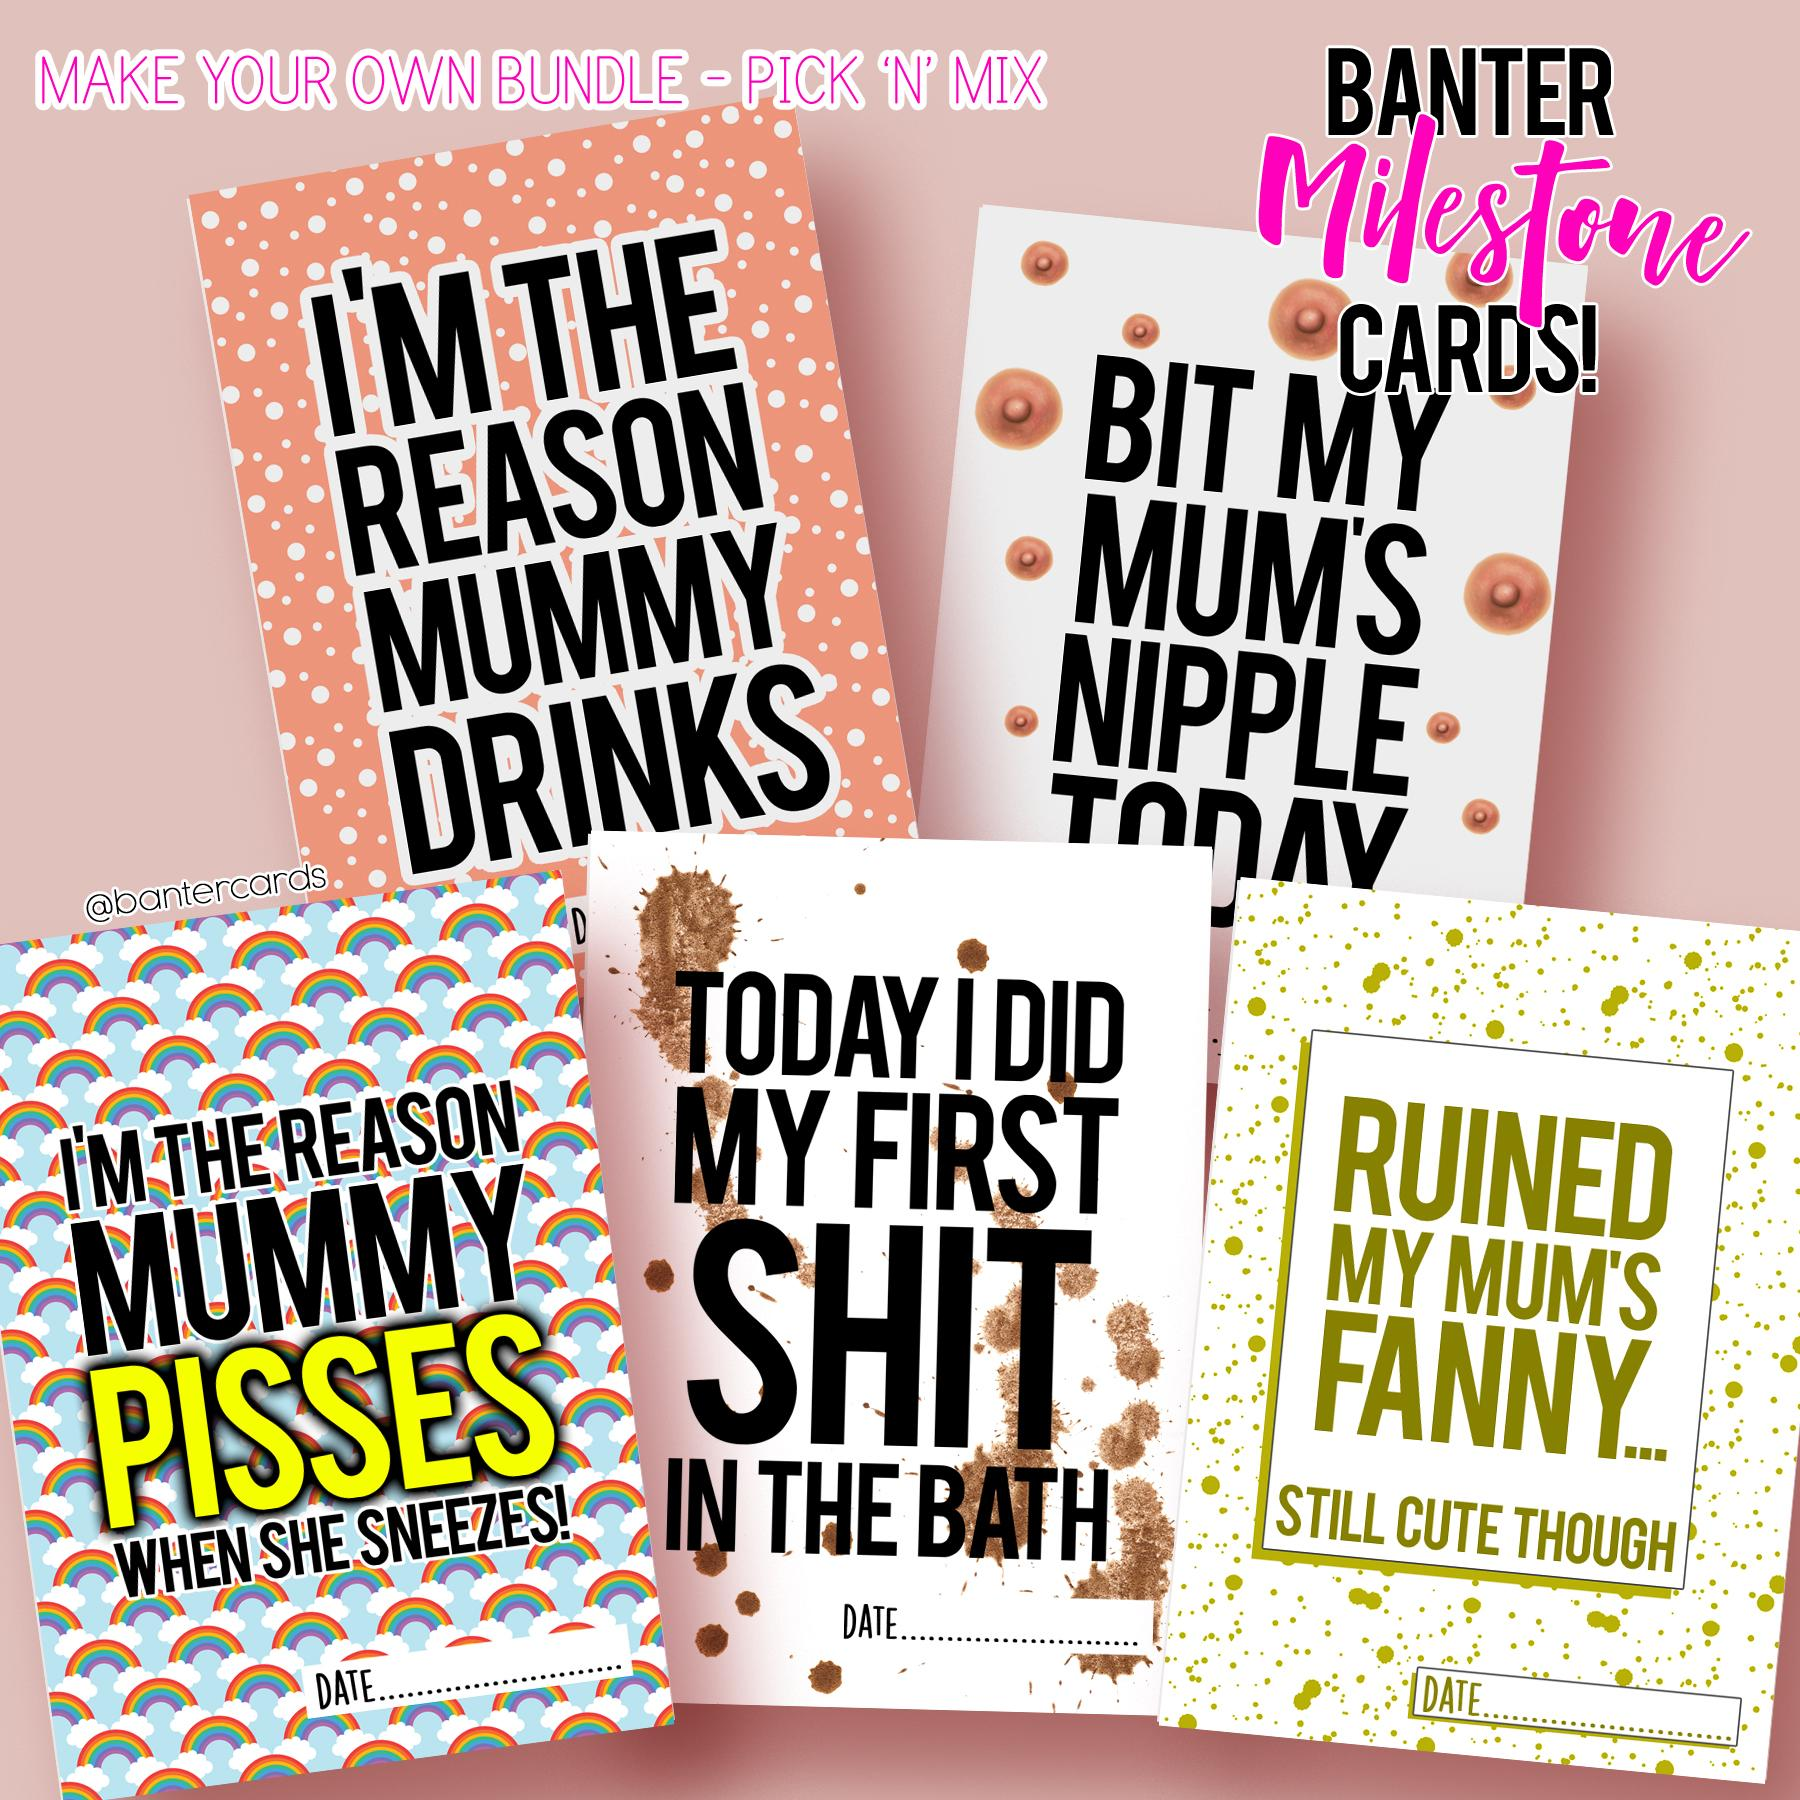 Banter Milestone Cards